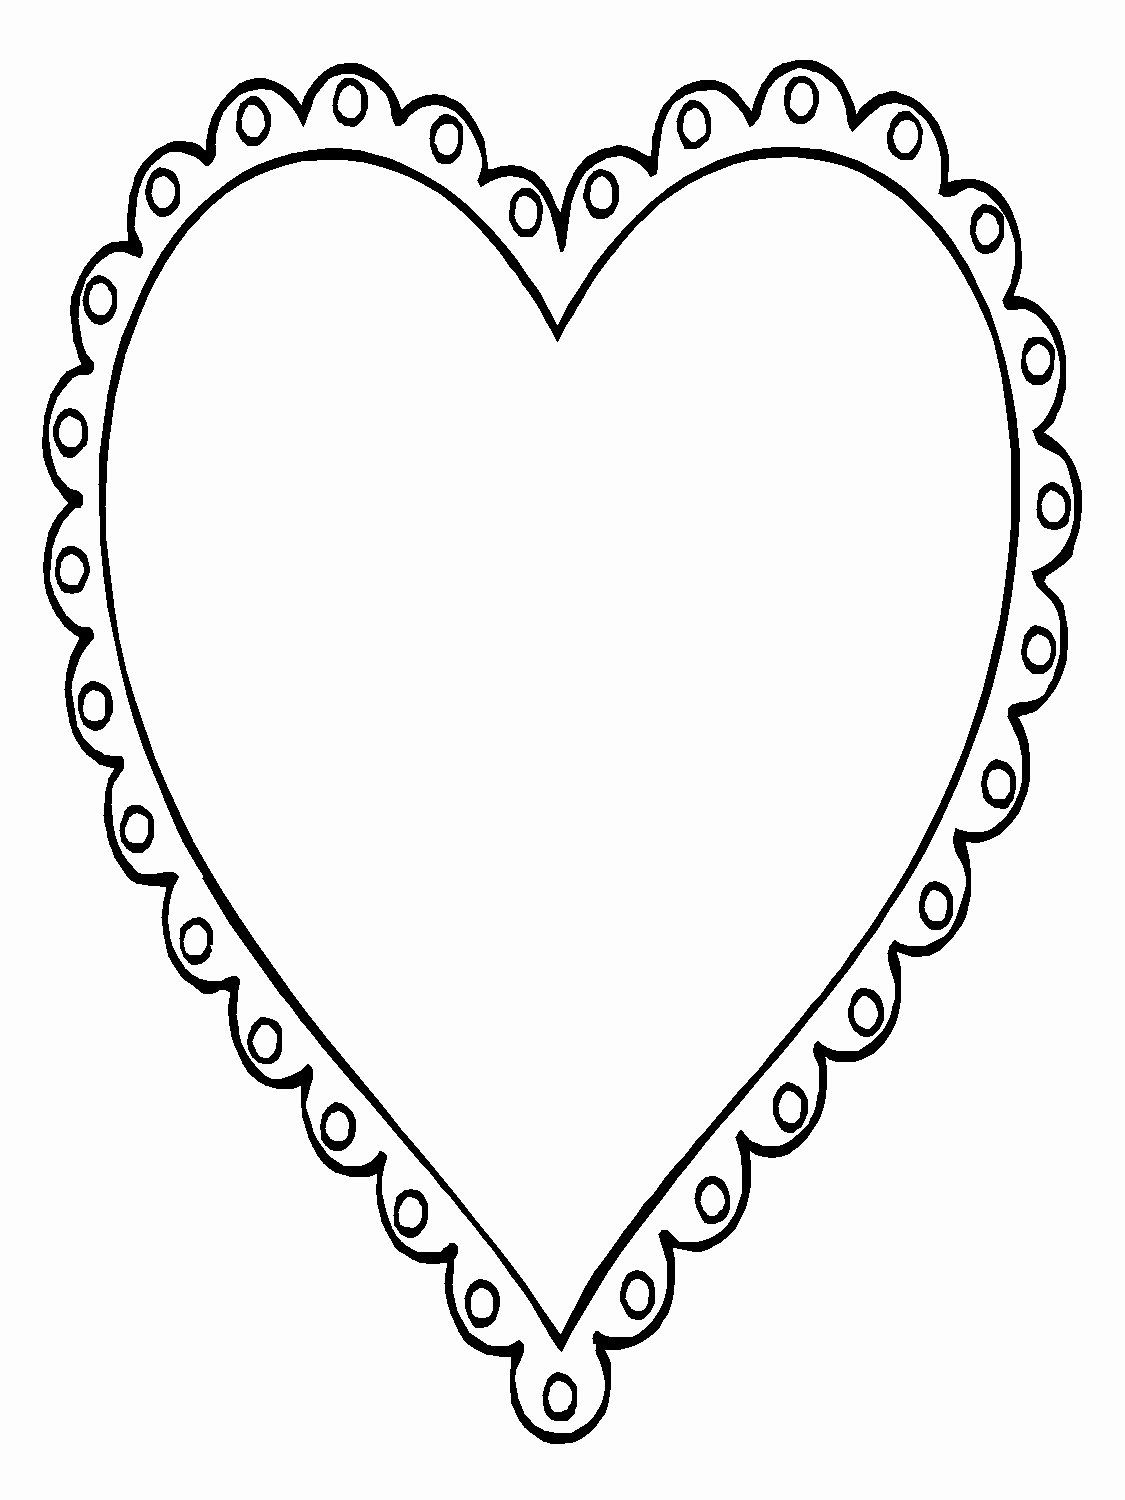 Heart Shape Coloring Page Elegant 56 Heart Shape Coloring Pages